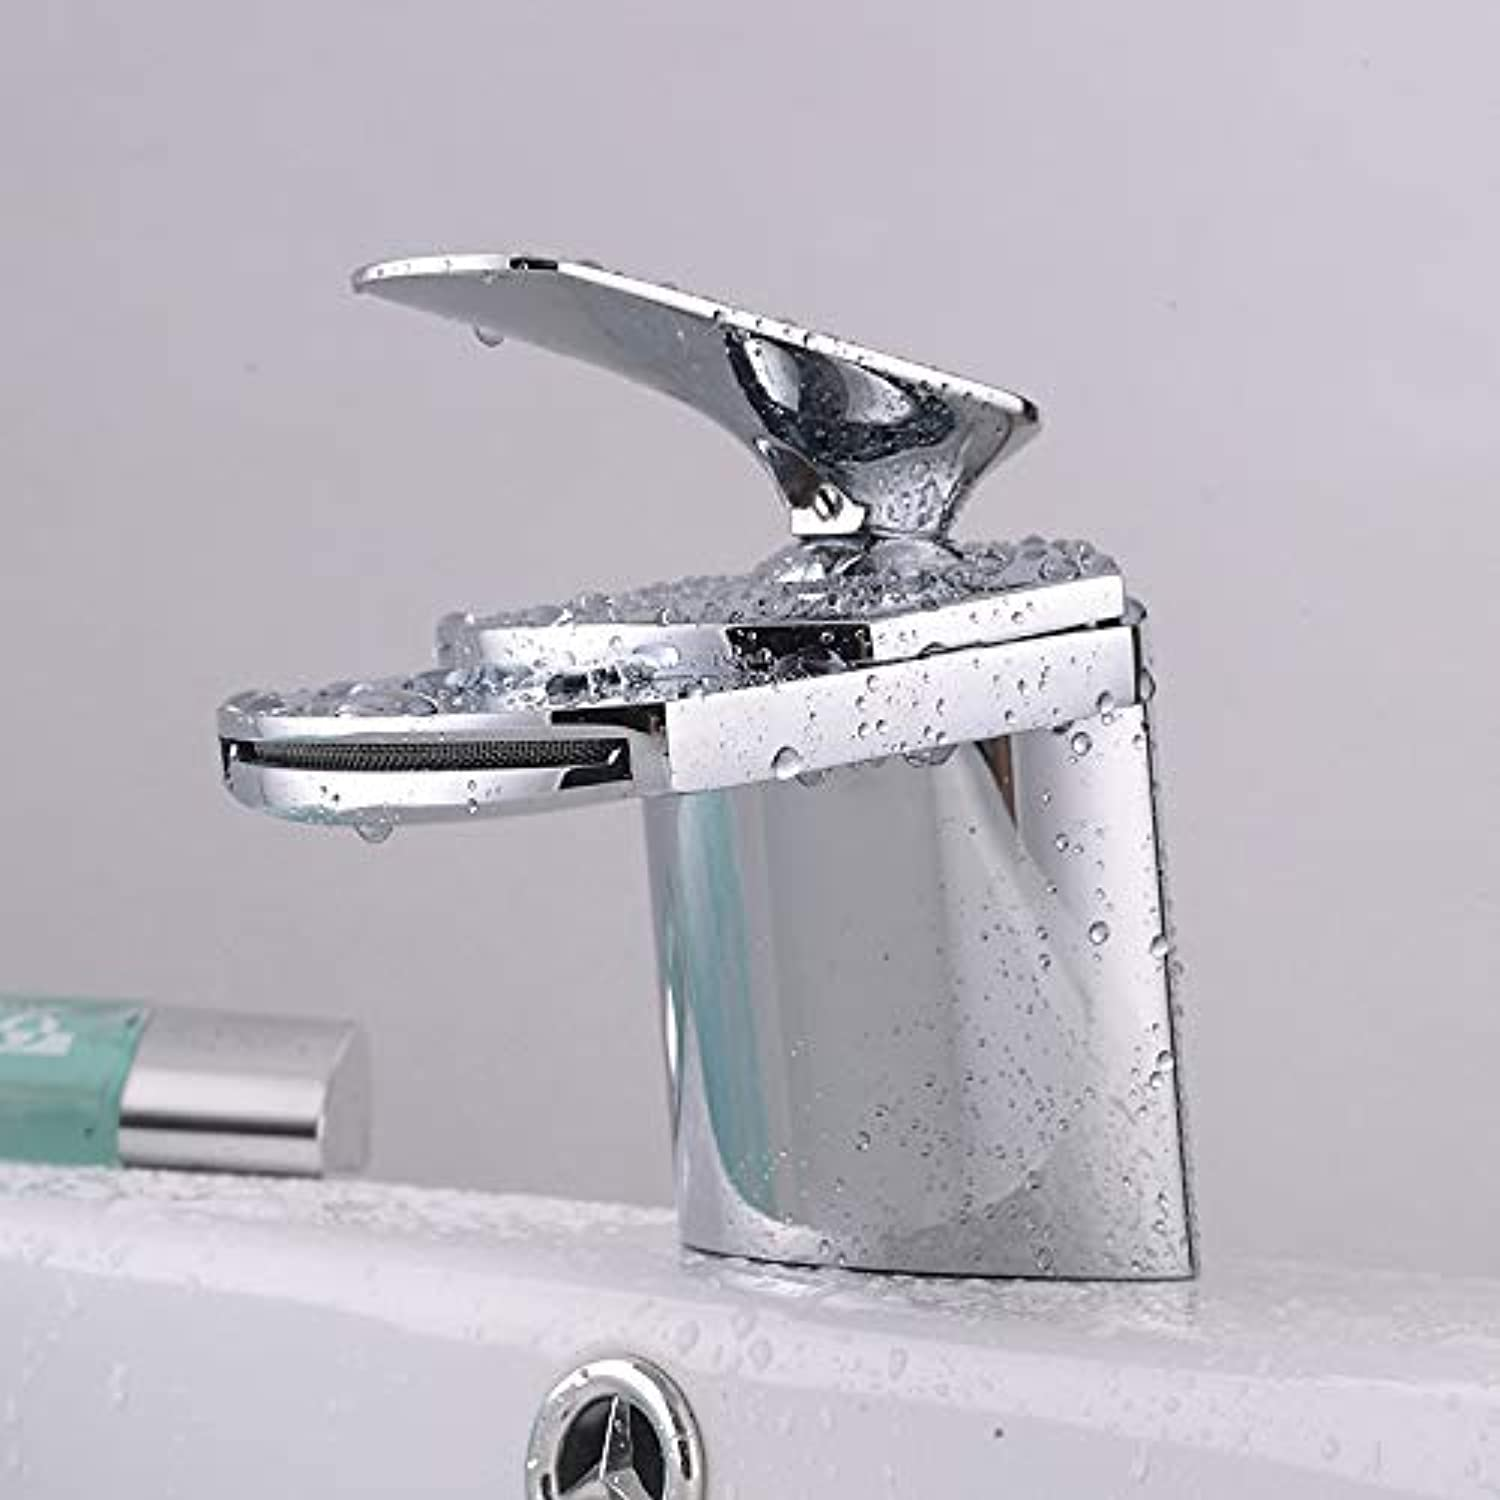 redOOY Diy Bathroom Sink Taps Taps Fauce Waterfall Faucet Upscale Wide Mouth Waterfall Faucet Copper Hot and Cold Basin Wash Basin Above Counter Basin